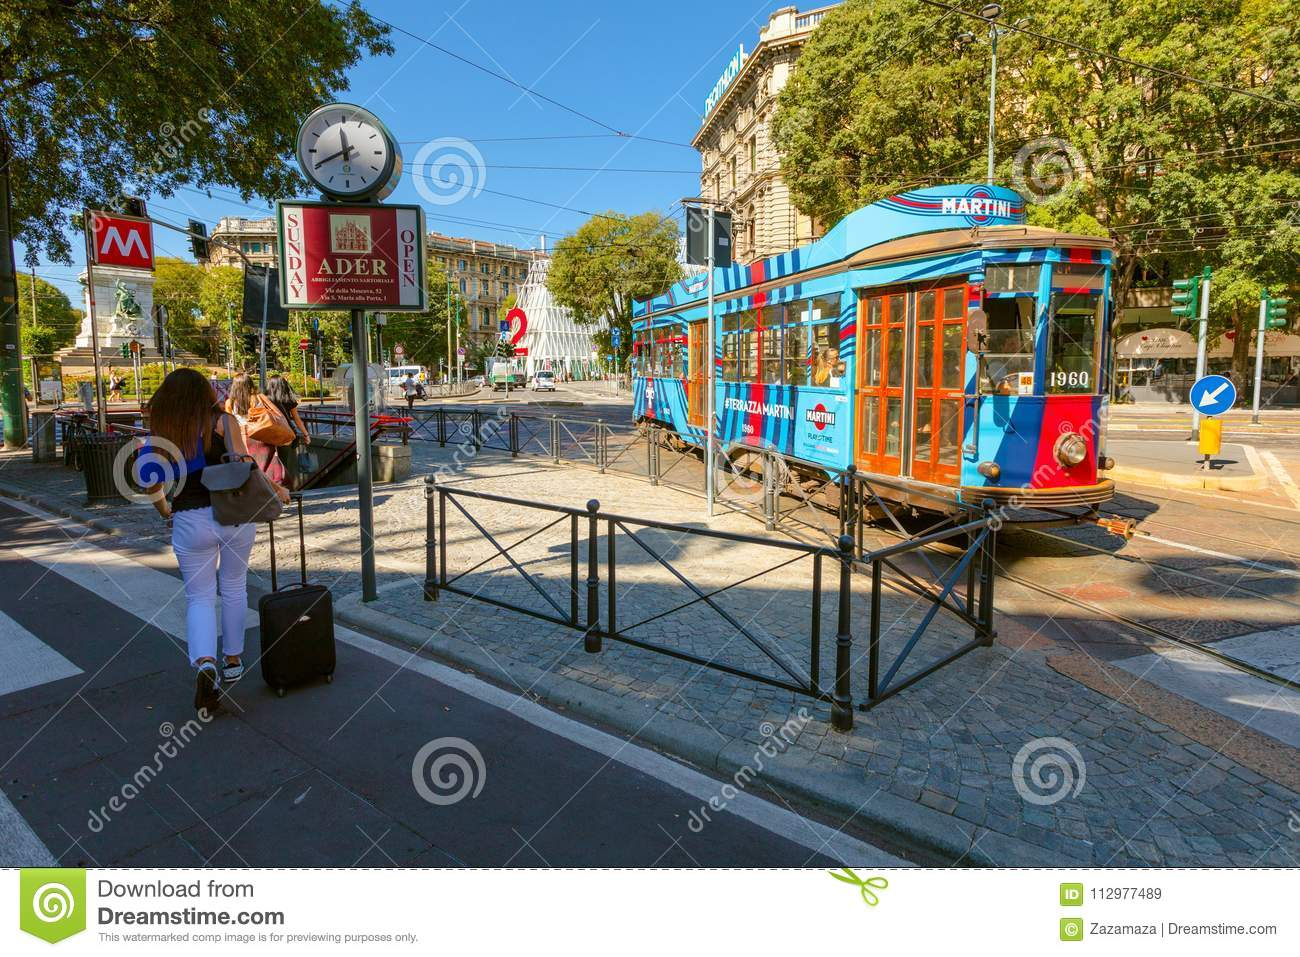 MILAN, ITALY - September 07, 2016: The tram has stopped on the tram stop near metro station Cairoli which is located on